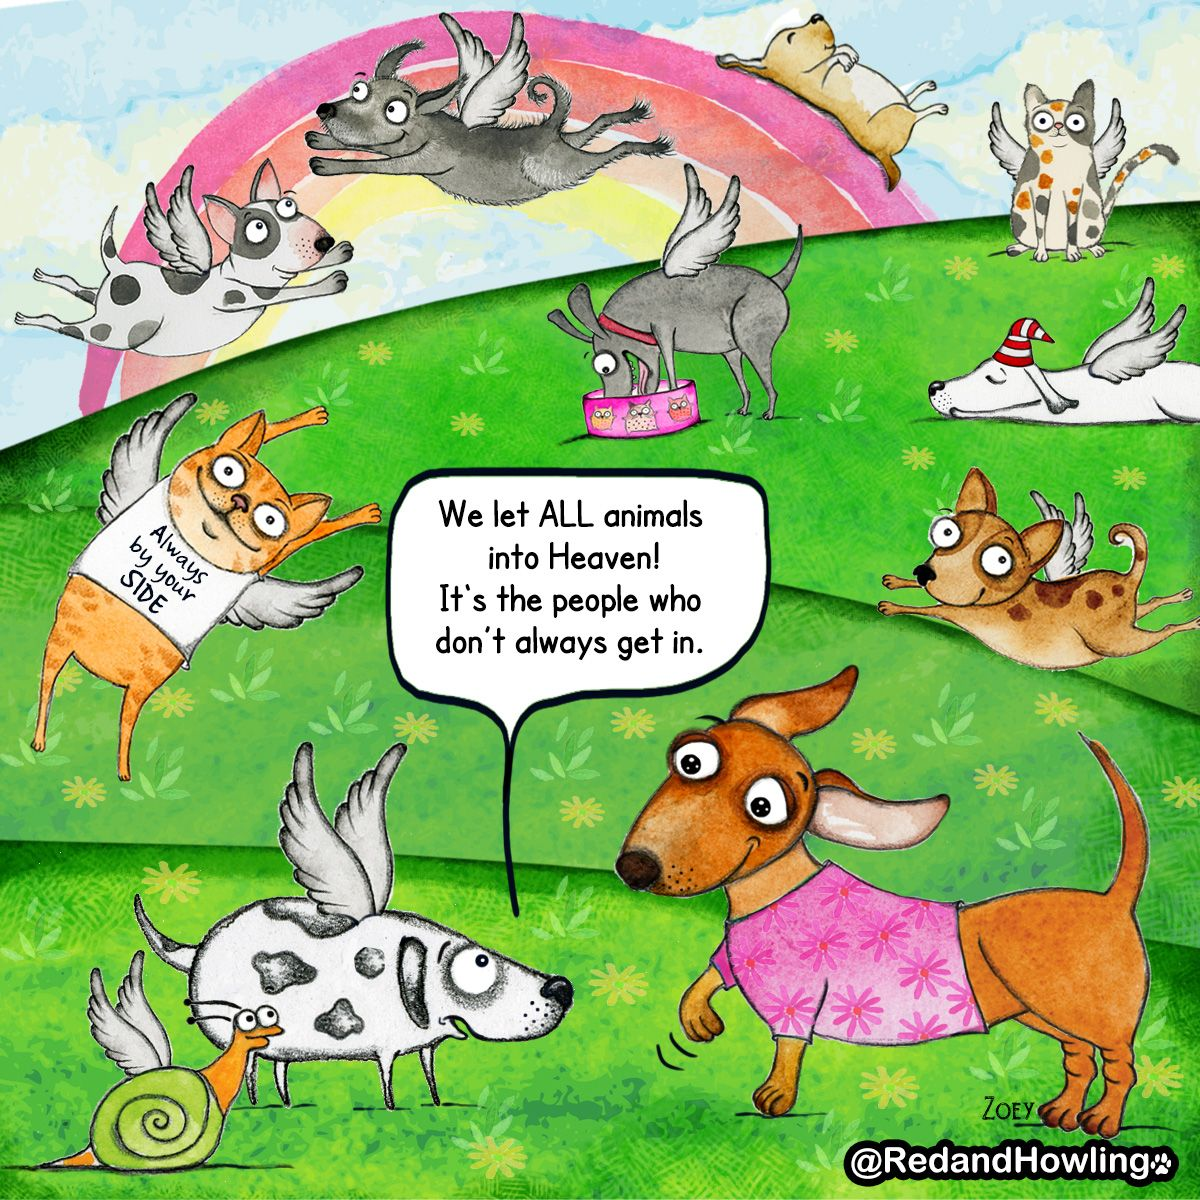 Heaven In 2020 Cartoon Dog Animal Photography Dogs Dog Love